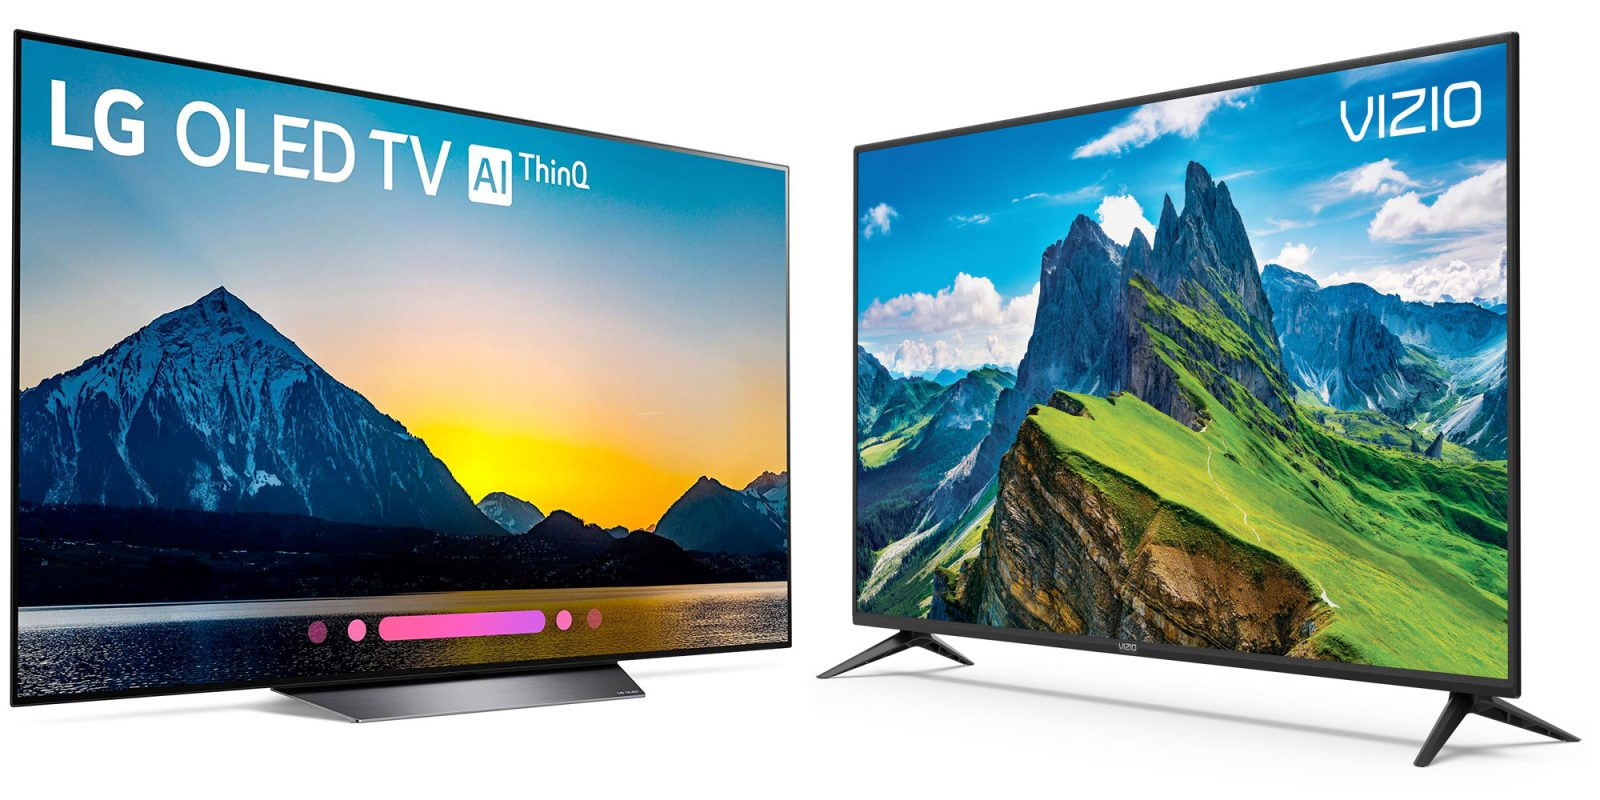 Father's Day Smart TVs from $200: VIZIO 50-inch 4K, LG 65-inch 4K OLED, more